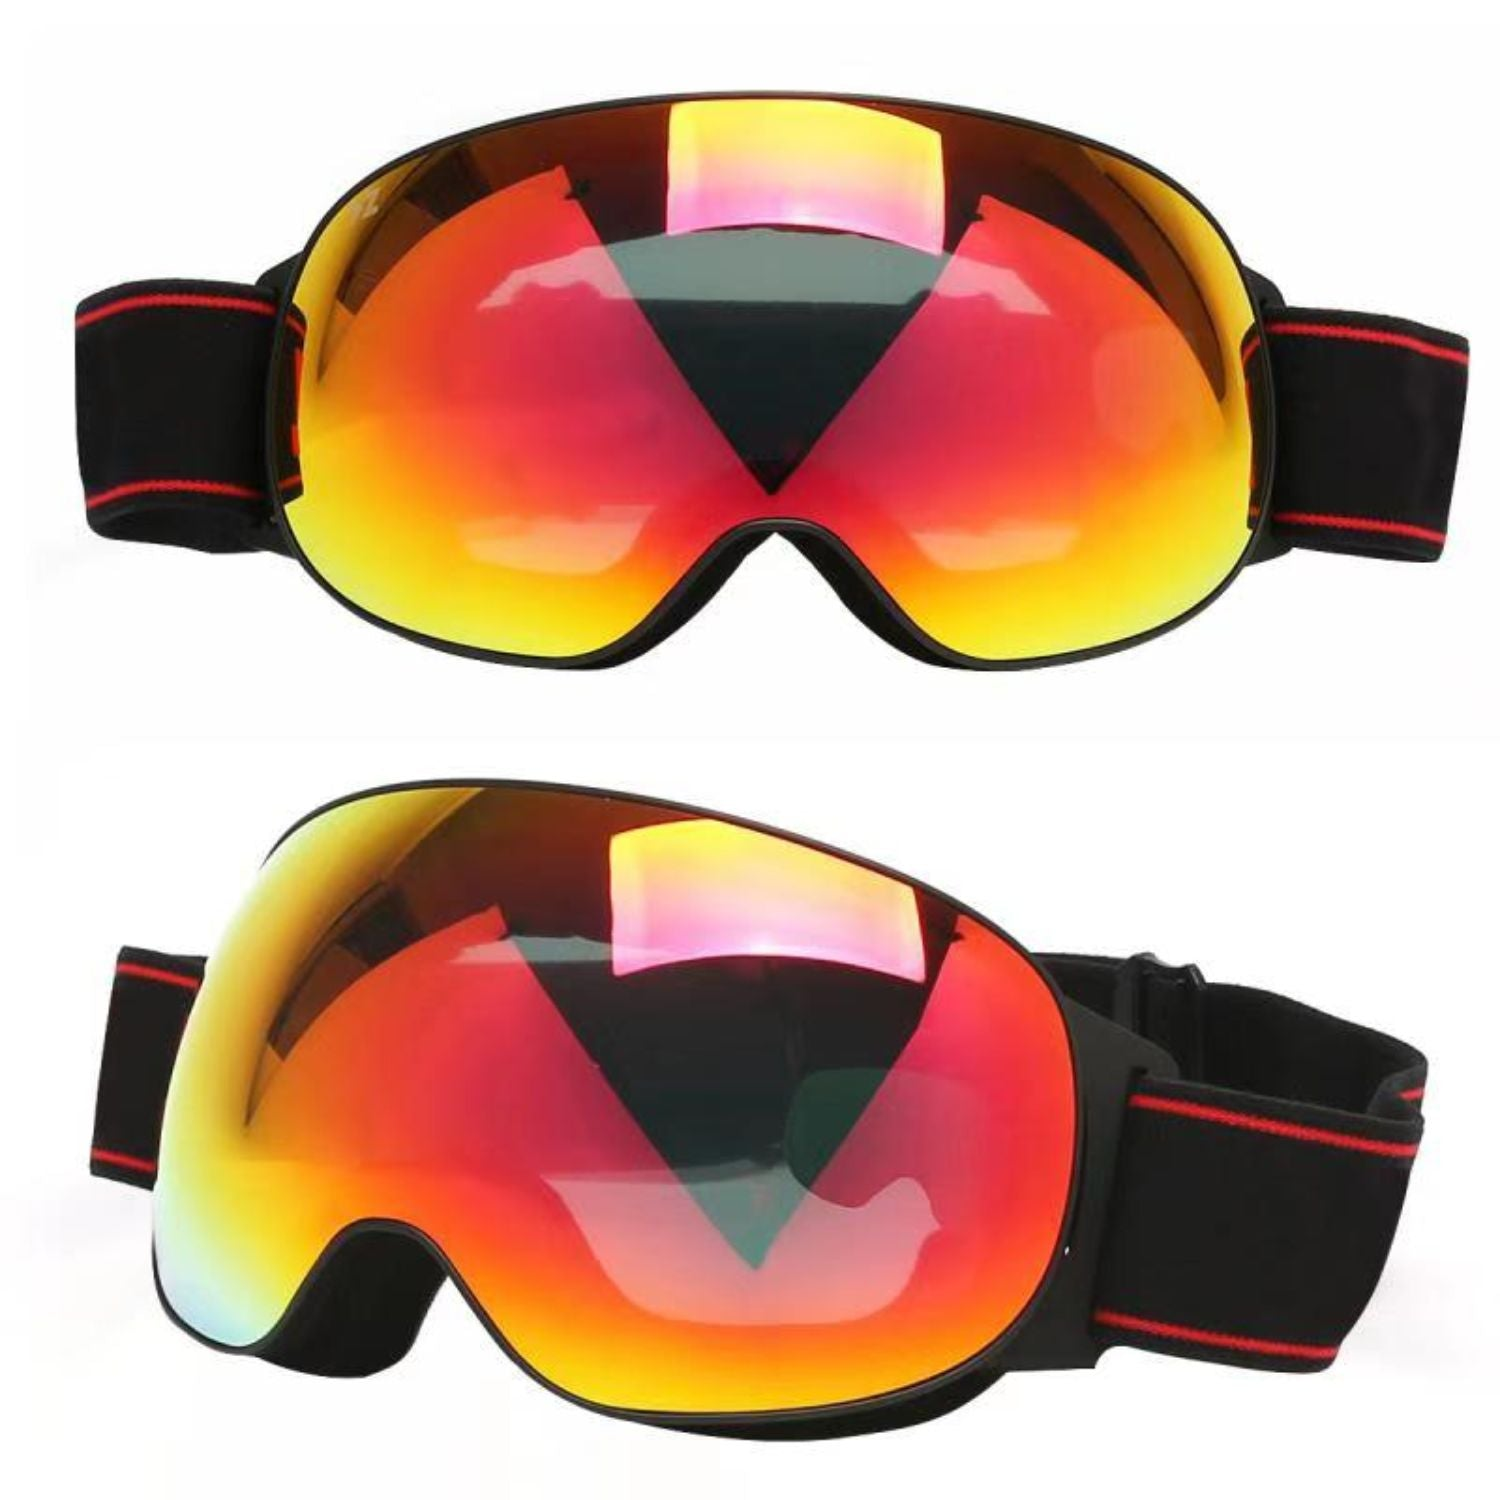 SG07 - Snowboard Ski UV Protection Goggles for Men and Women - Iris Fashion Inc. | Wholesale Sunglasses and Glasses